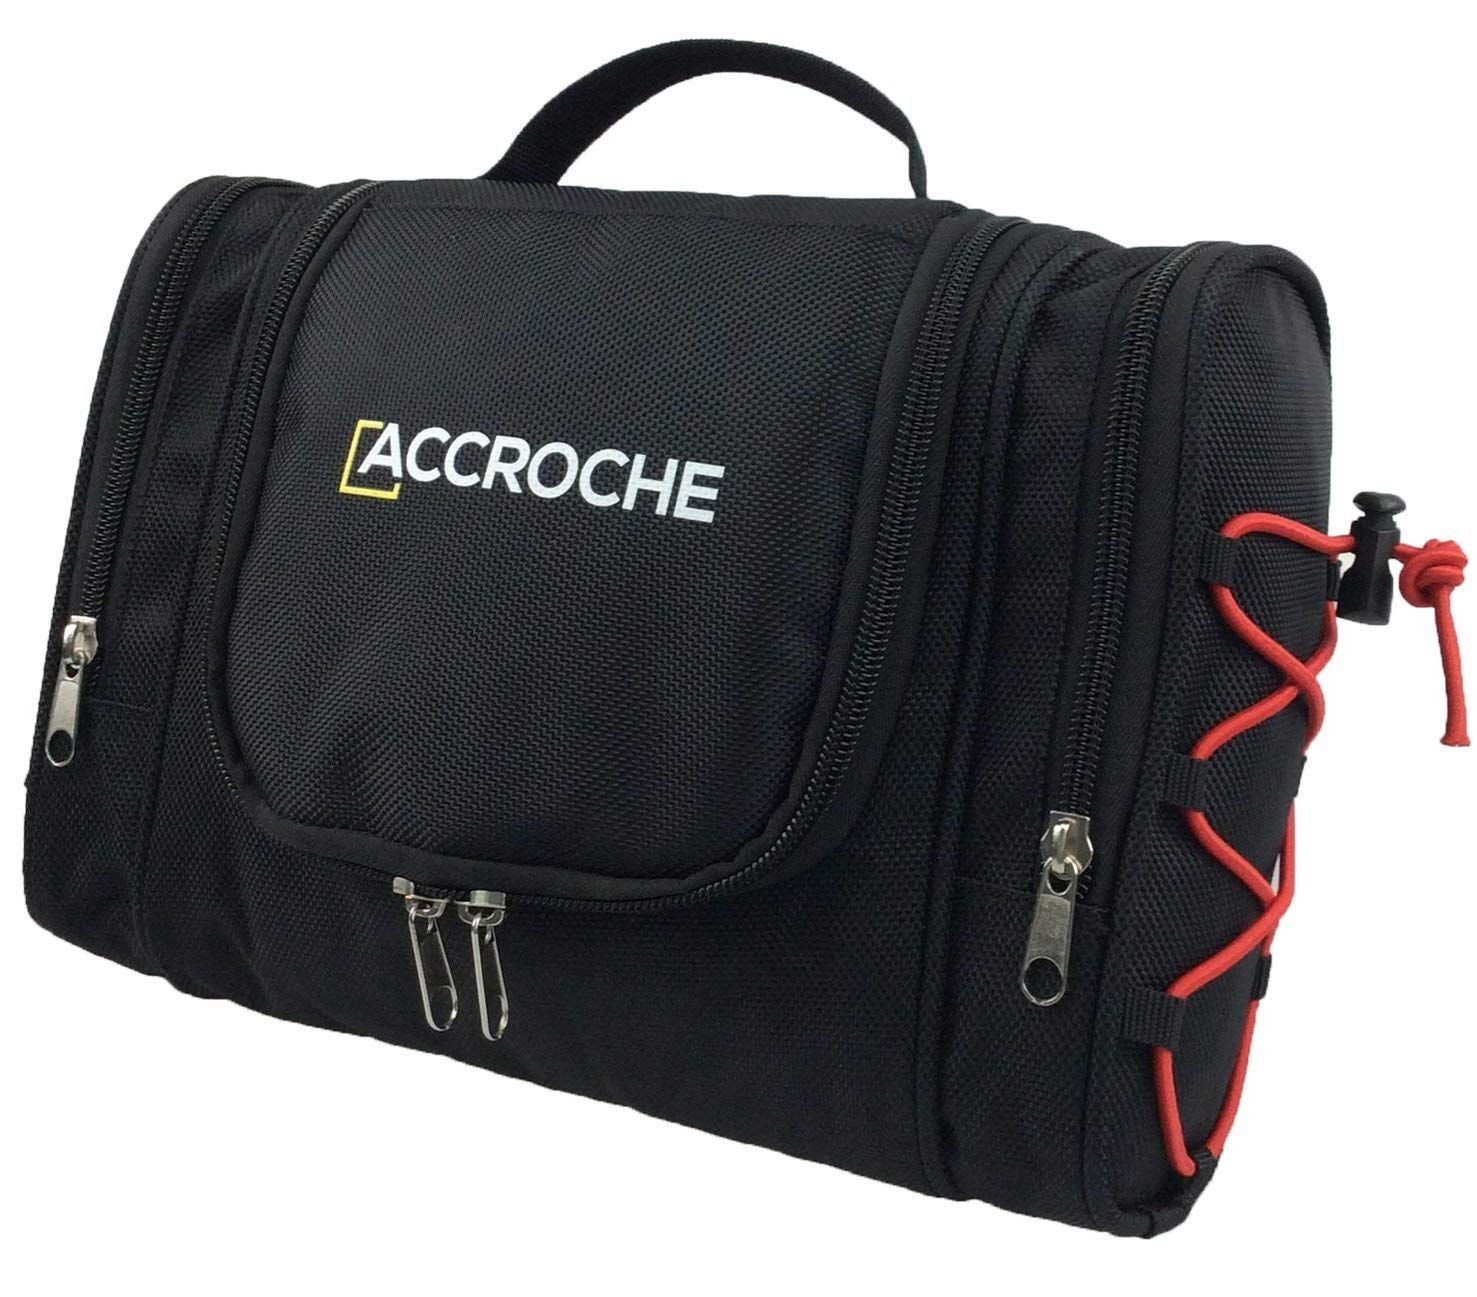 7b60c0a97021 ACCROCHE Bret Hanging Travel Toiletry Bag for Men and Women, Flat ...